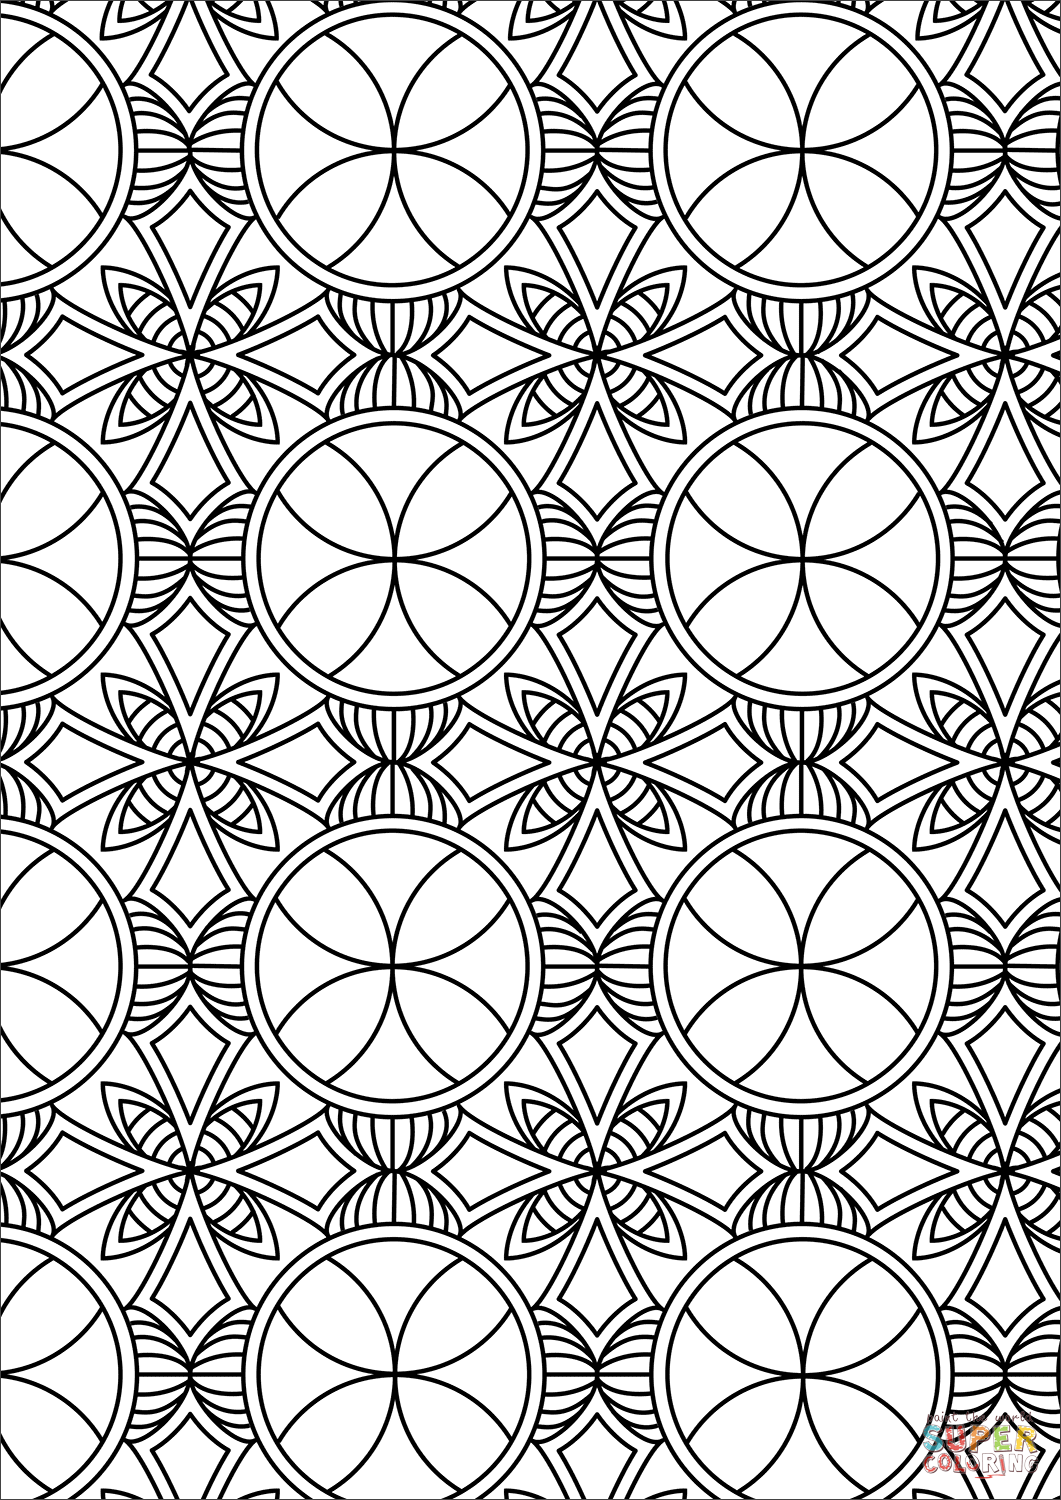 coloring patterns coloring to calm volume two patterns coloring patterns